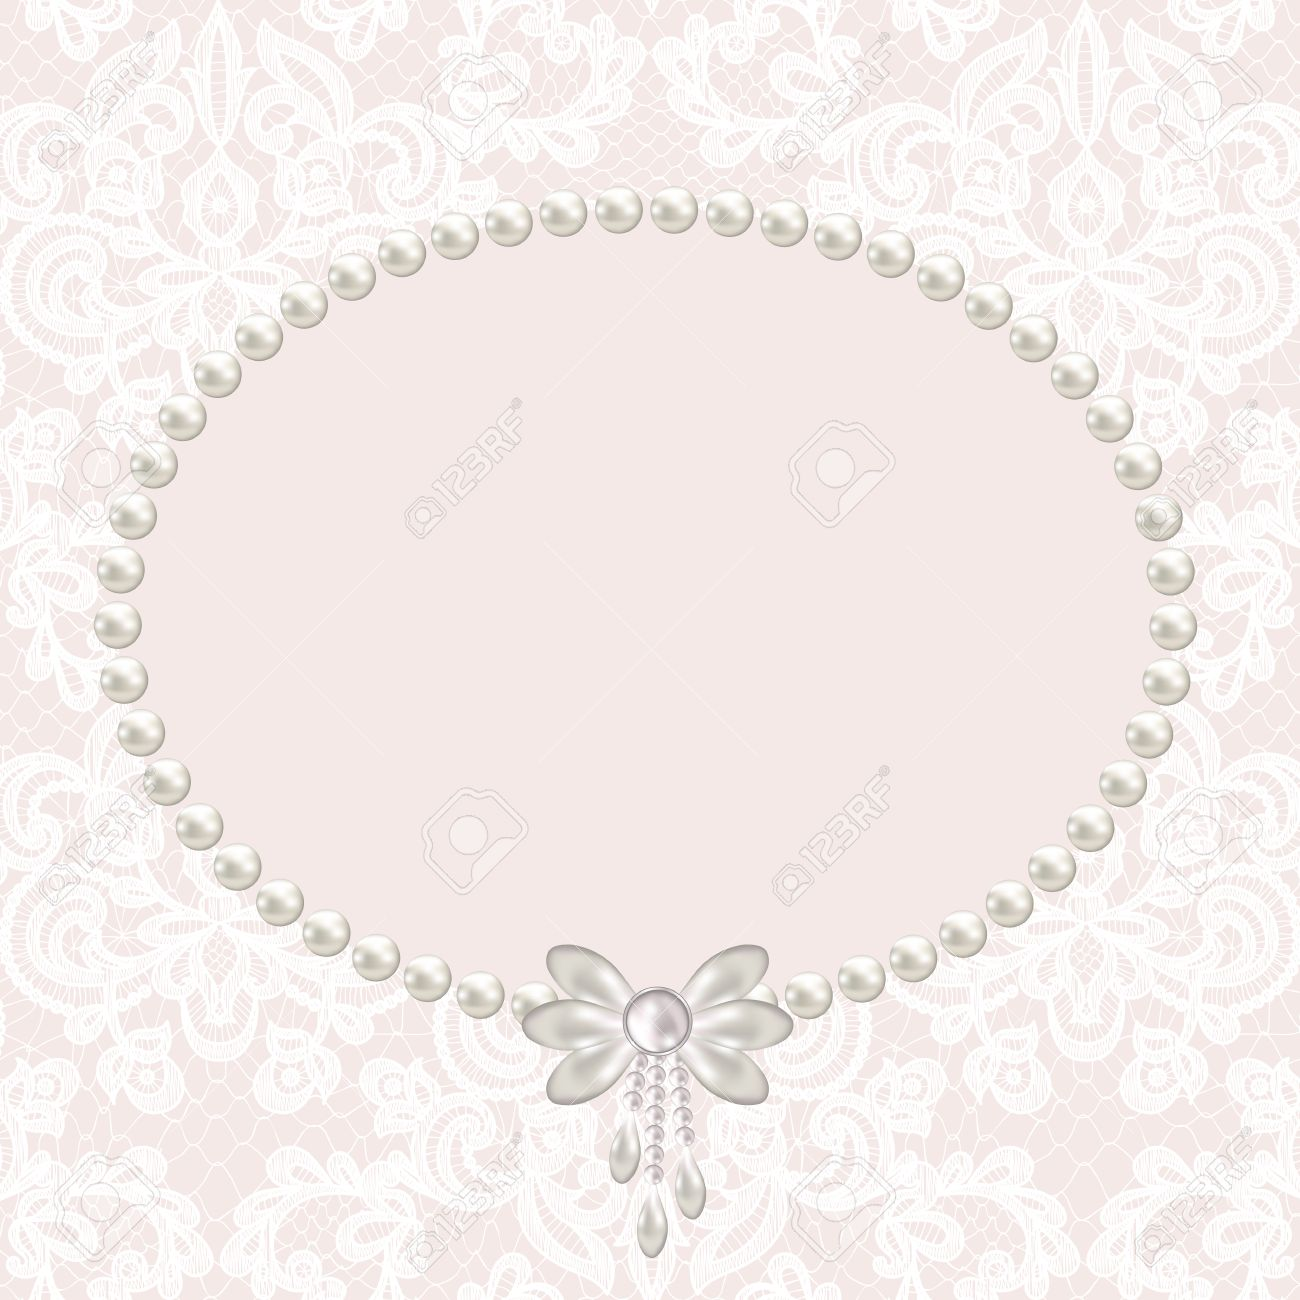 pearl frame wedding invitation or greeting card with pearl frame on lace background illustration